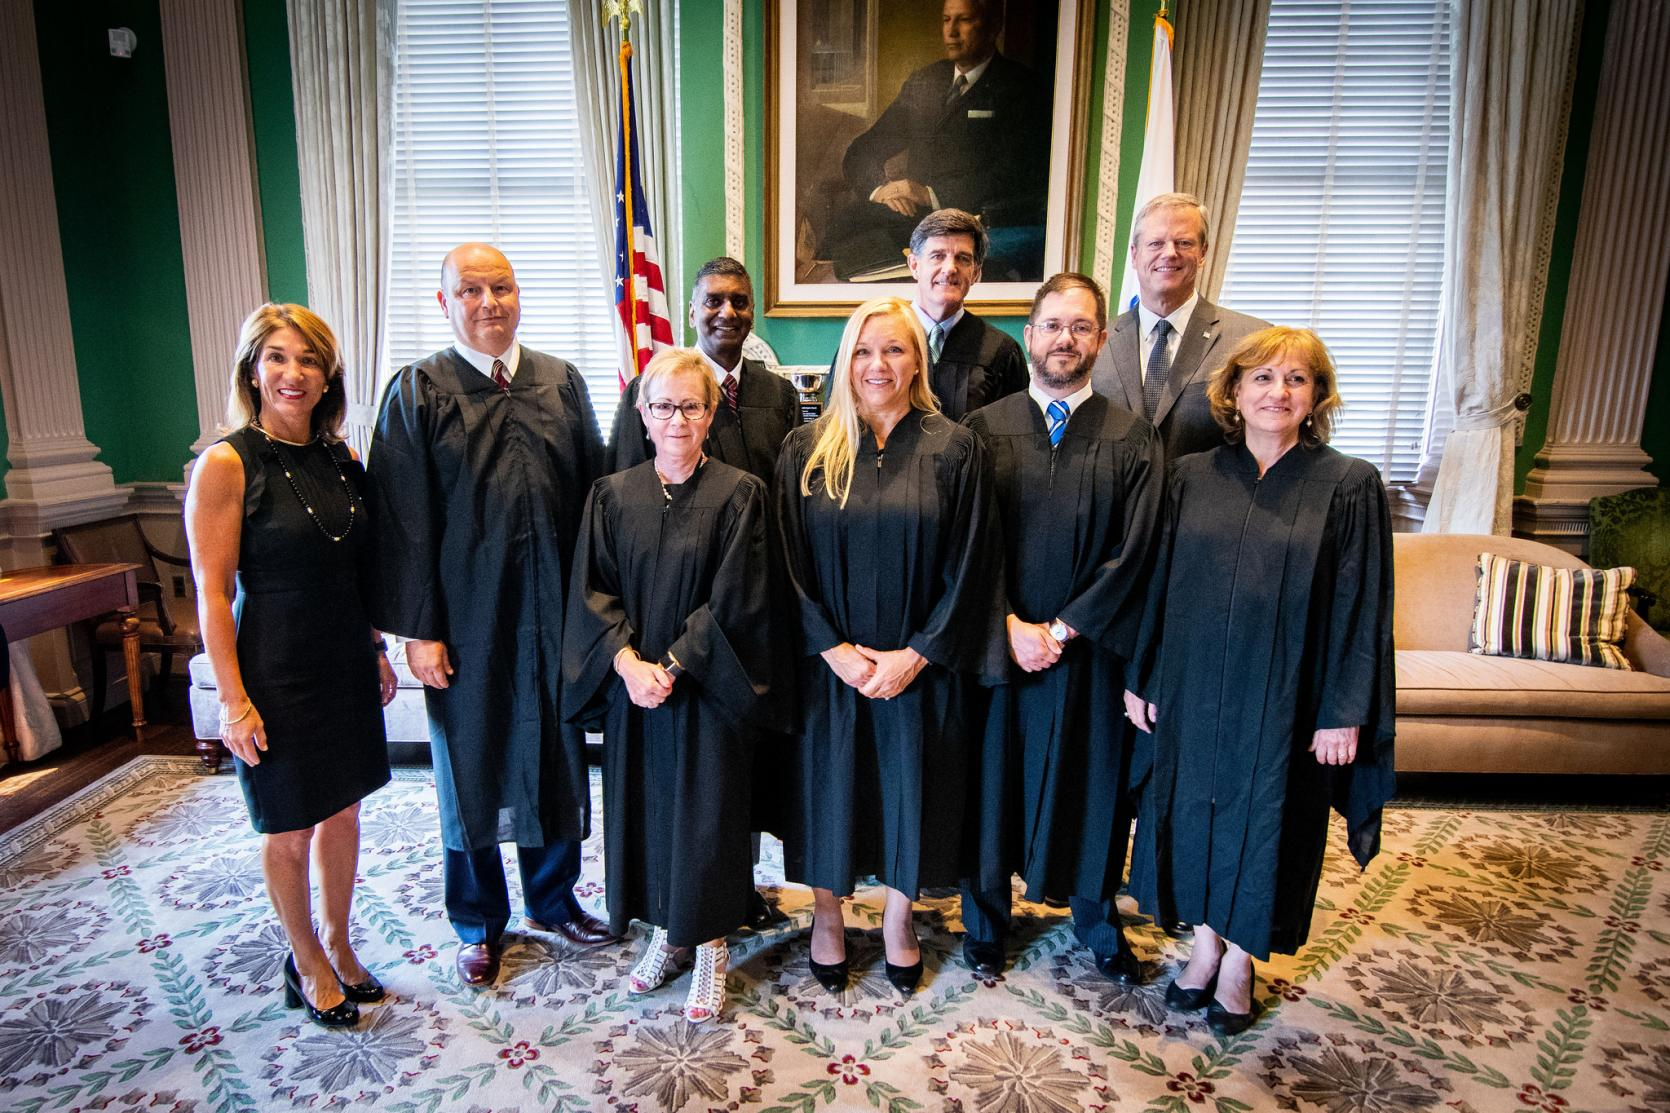 Governor Baker and Lt. Governor Polito with Housing Court justices.